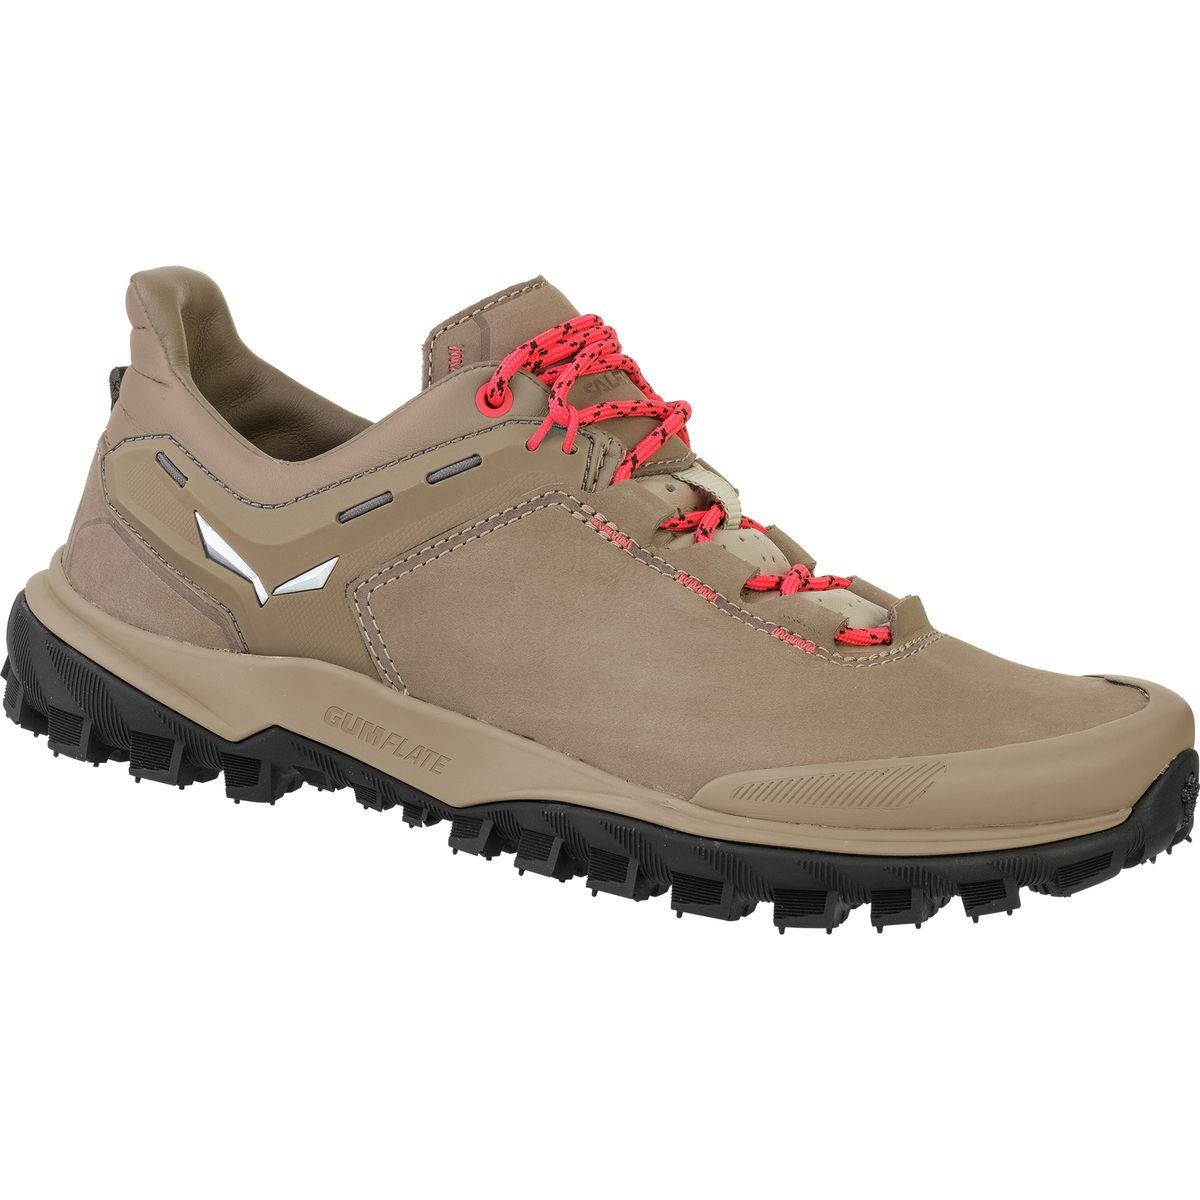 Salewa Women's Wander Hiker Leather Hiking Shoe, Other Nut/Hot Coral, 9